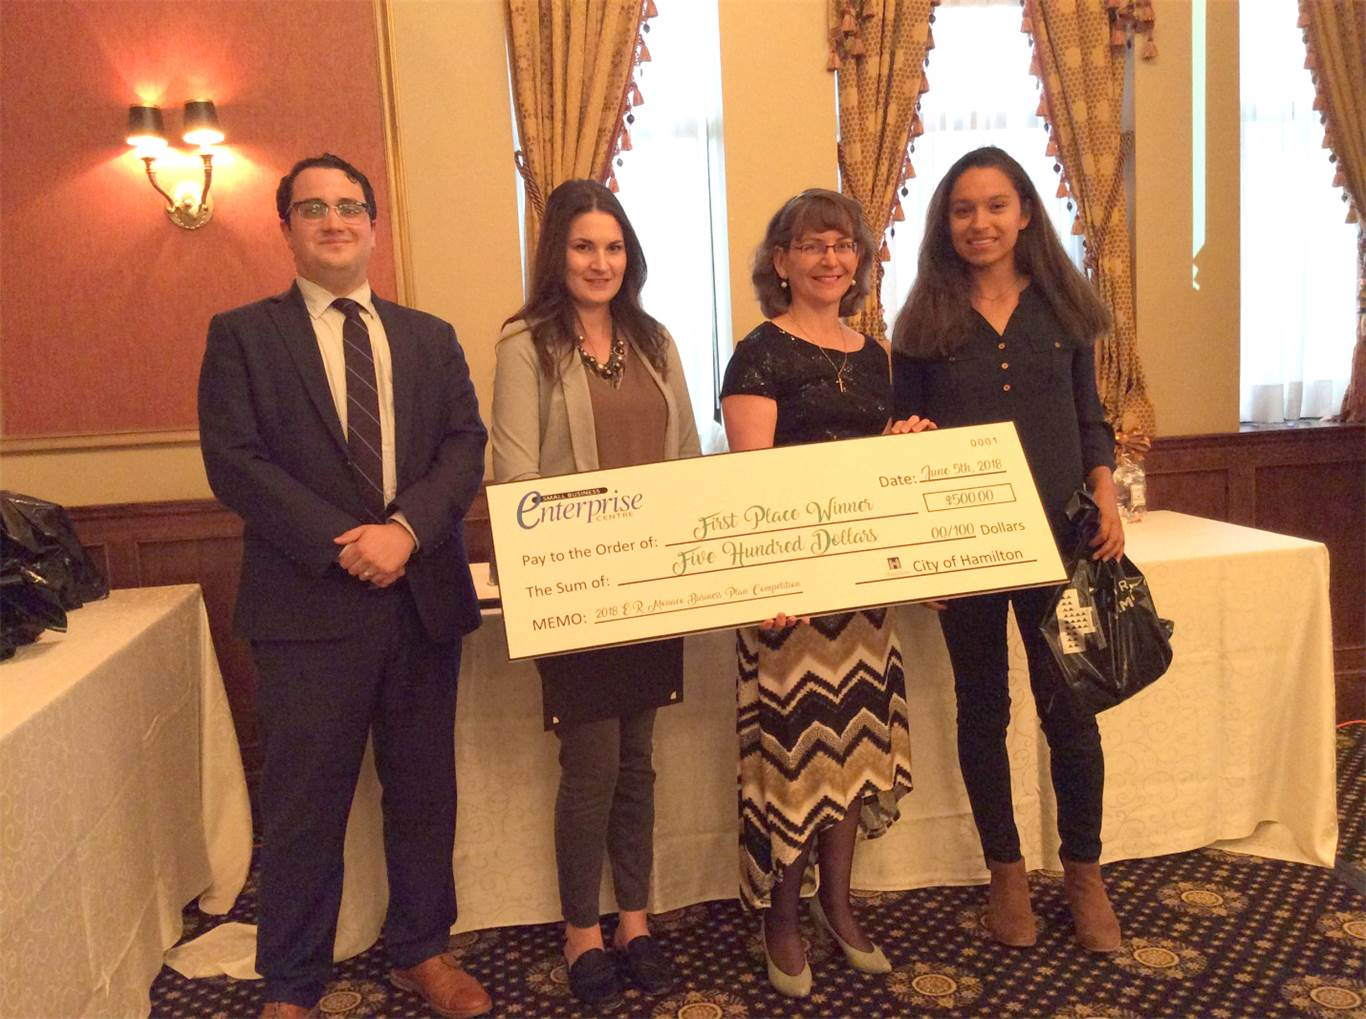 Pictured left to right:  Paul Demarco (from SimpsonWigle LAW LLP and judge for the competition), Natalie Reid (from Mohawk College and judge for the competition), Mary Monaco (Sponsor of the Program), and Jessie Drzewicki.